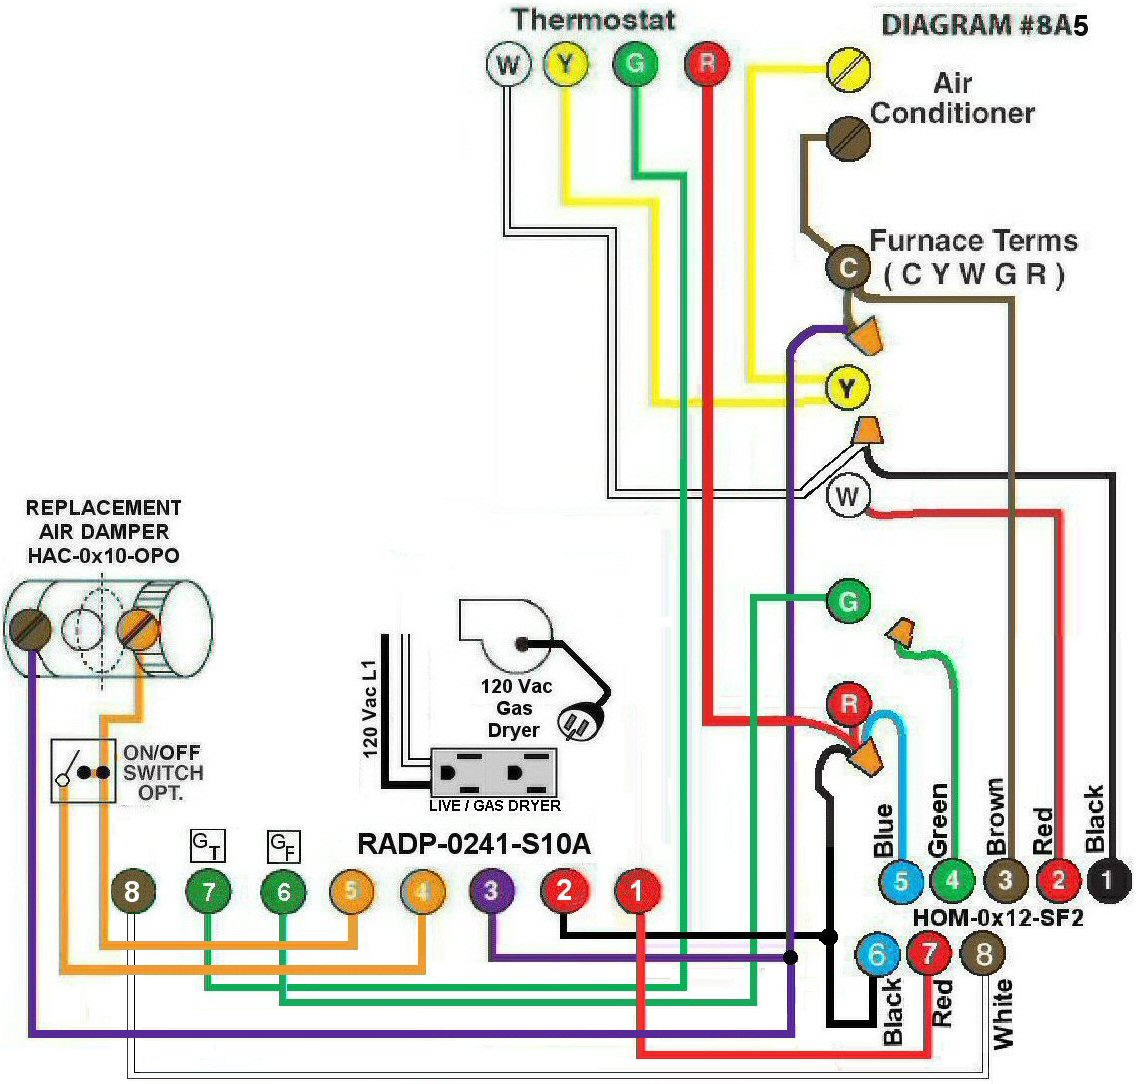 fireplace fan wiring diagram html with Gas Fireplace Wiring Diagram on Eden Pure Heaters Amazon likewise Bliss Hammocks Stow besides 5m52n Needing Fan Switch Jenn Air Model Jed8430adb Cooktop as well Robert Shaw 7000 24v Gas Valve Wiring Diagram likewise Payne Furnace Wiring Diagram.